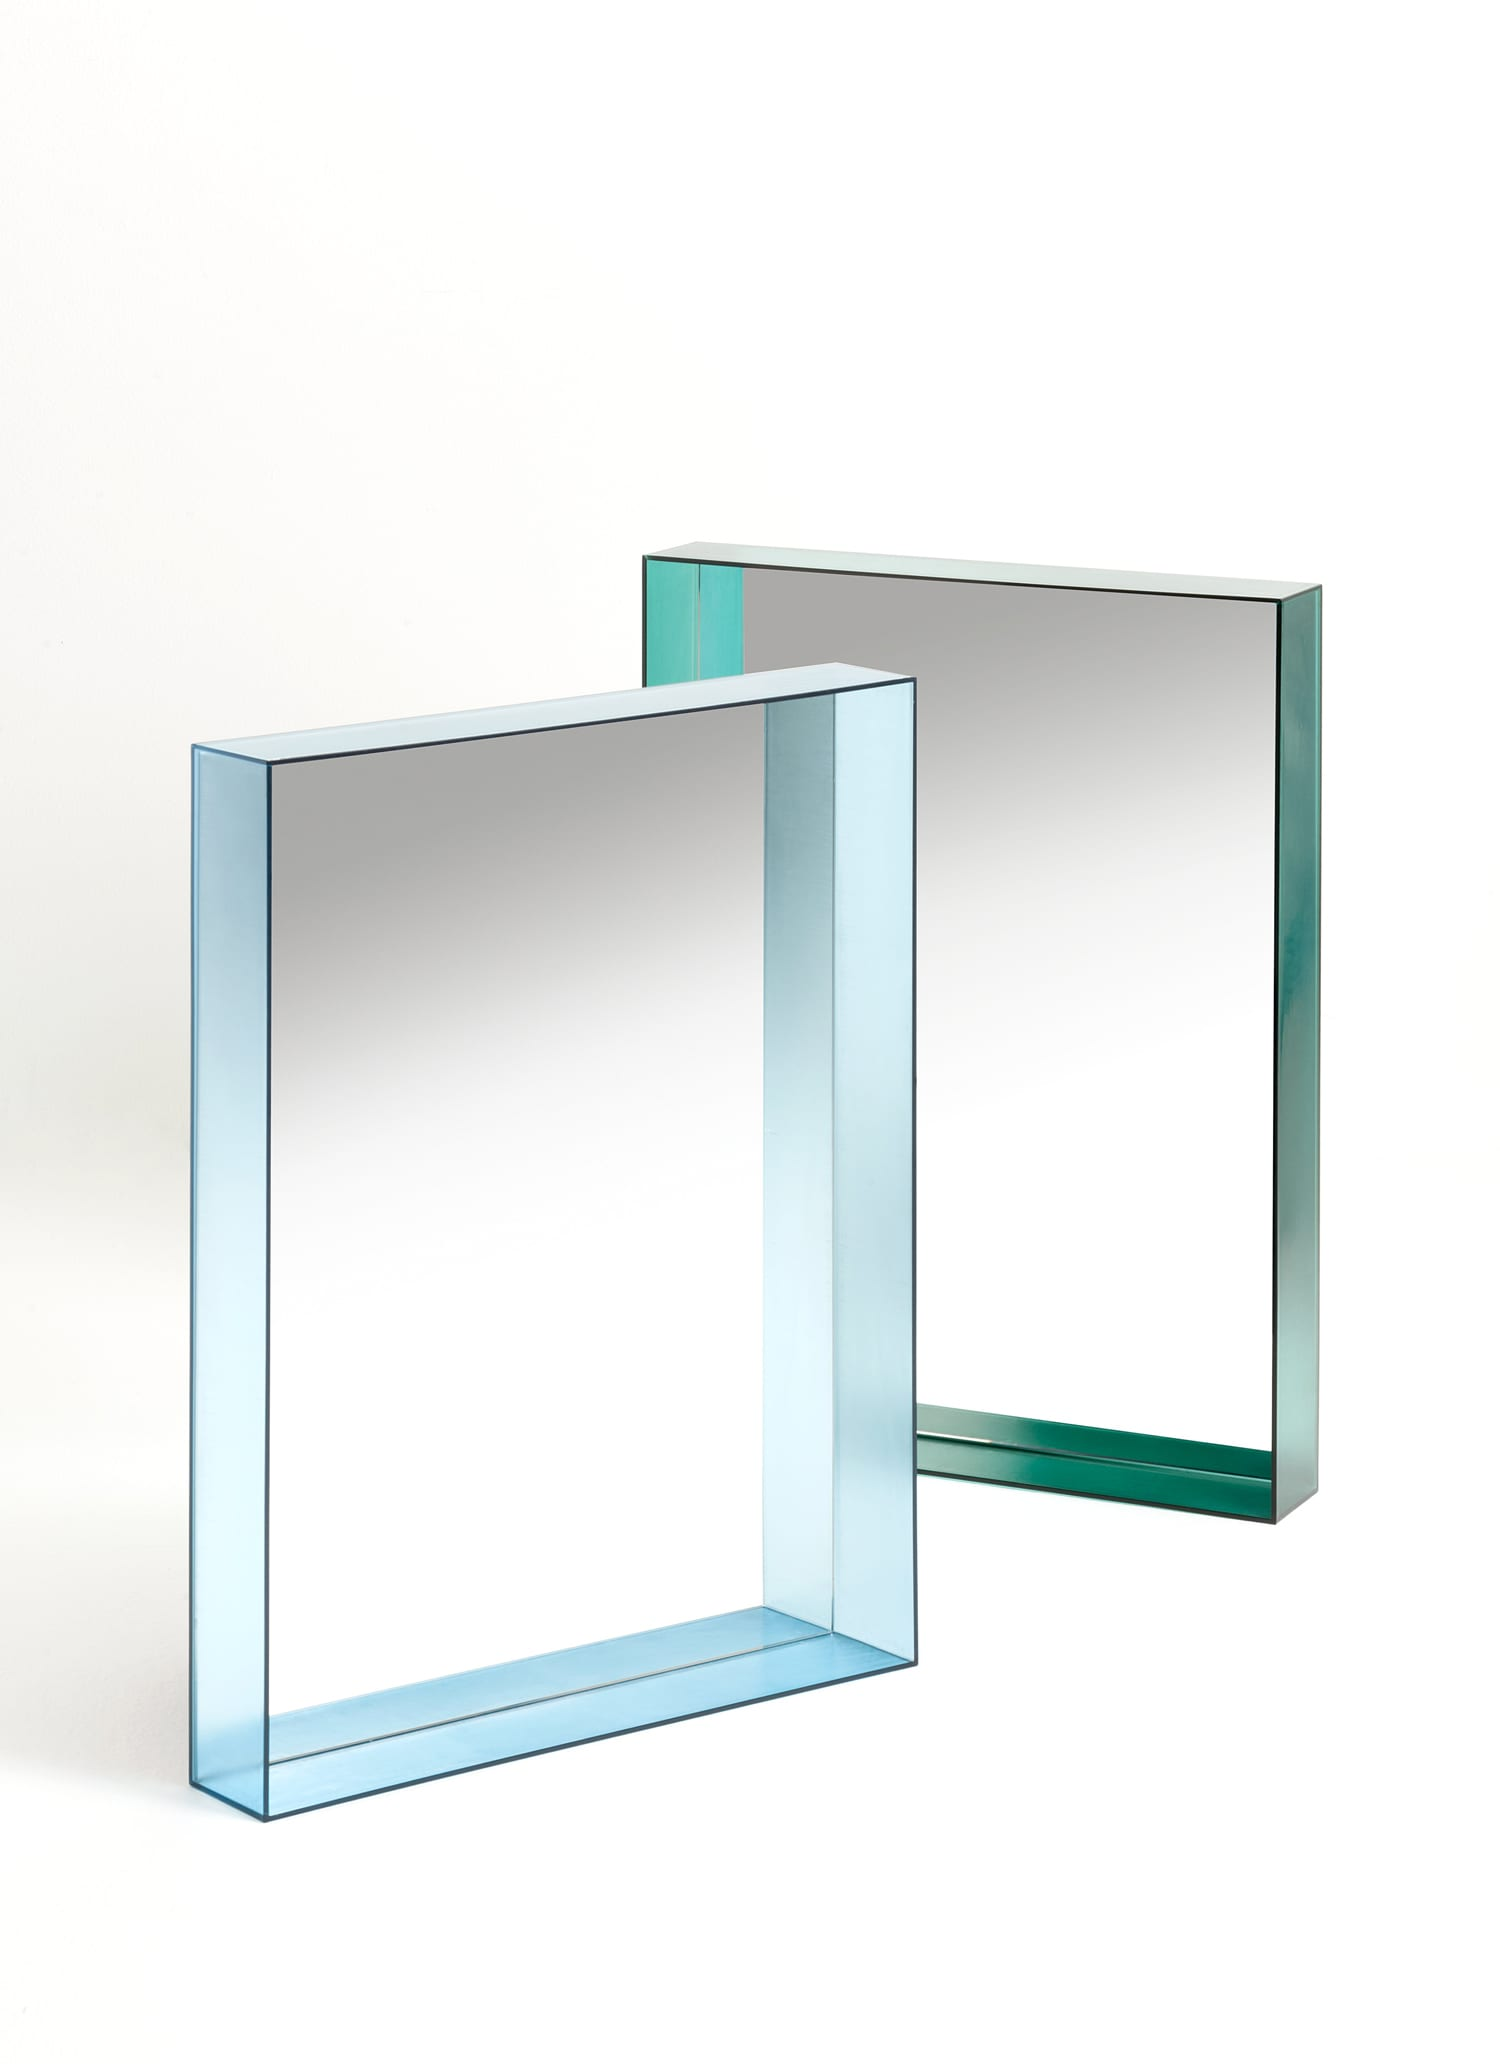 Only Me Mirror by Philippe Starck for Kartell | Yellowtrace